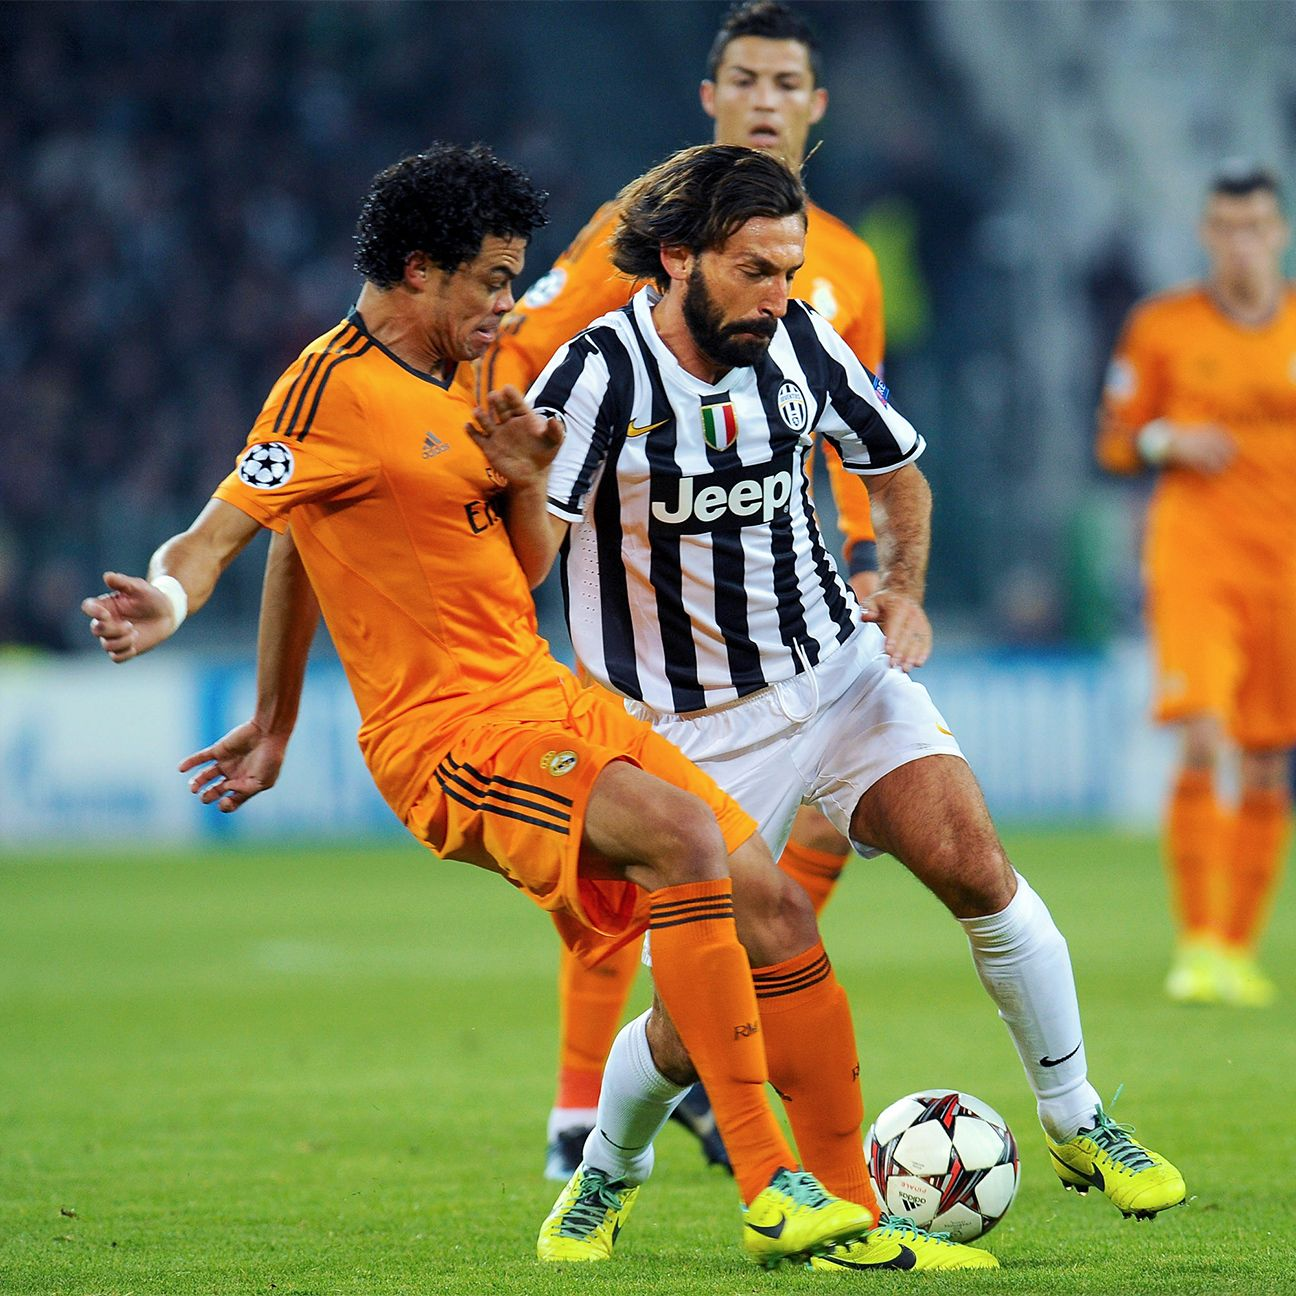 Pepe and Real Madrid are a familiar Champions League foe for Andrea Pirlo and Juventus.